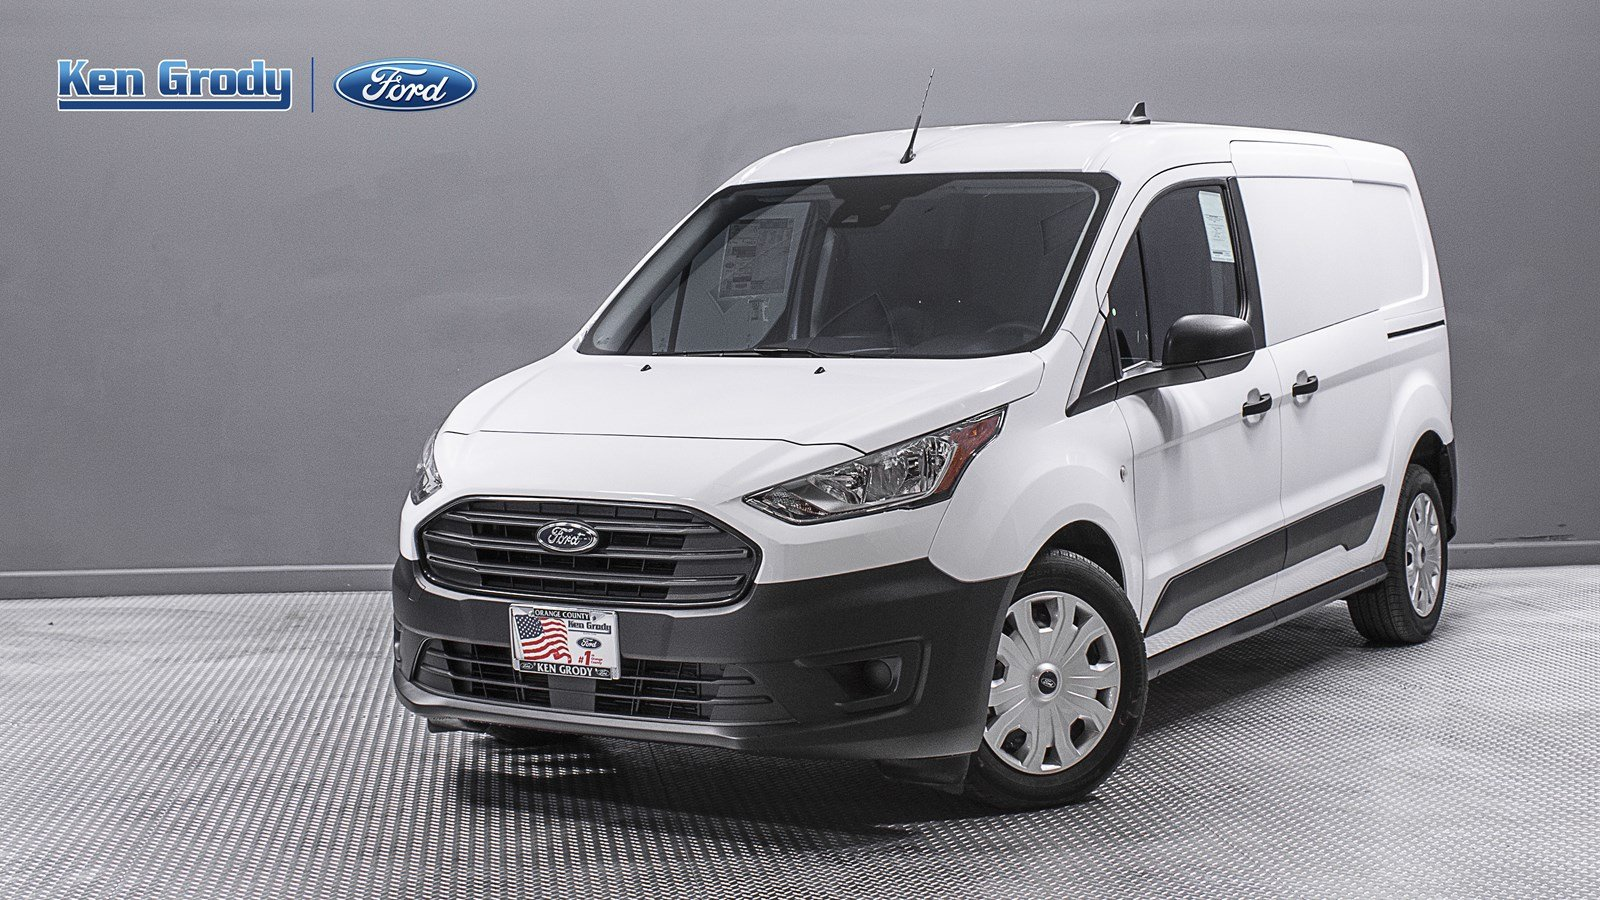 25 Gallery of Ford Transit Connect 2020 Price and Review for Ford Transit Connect 2020